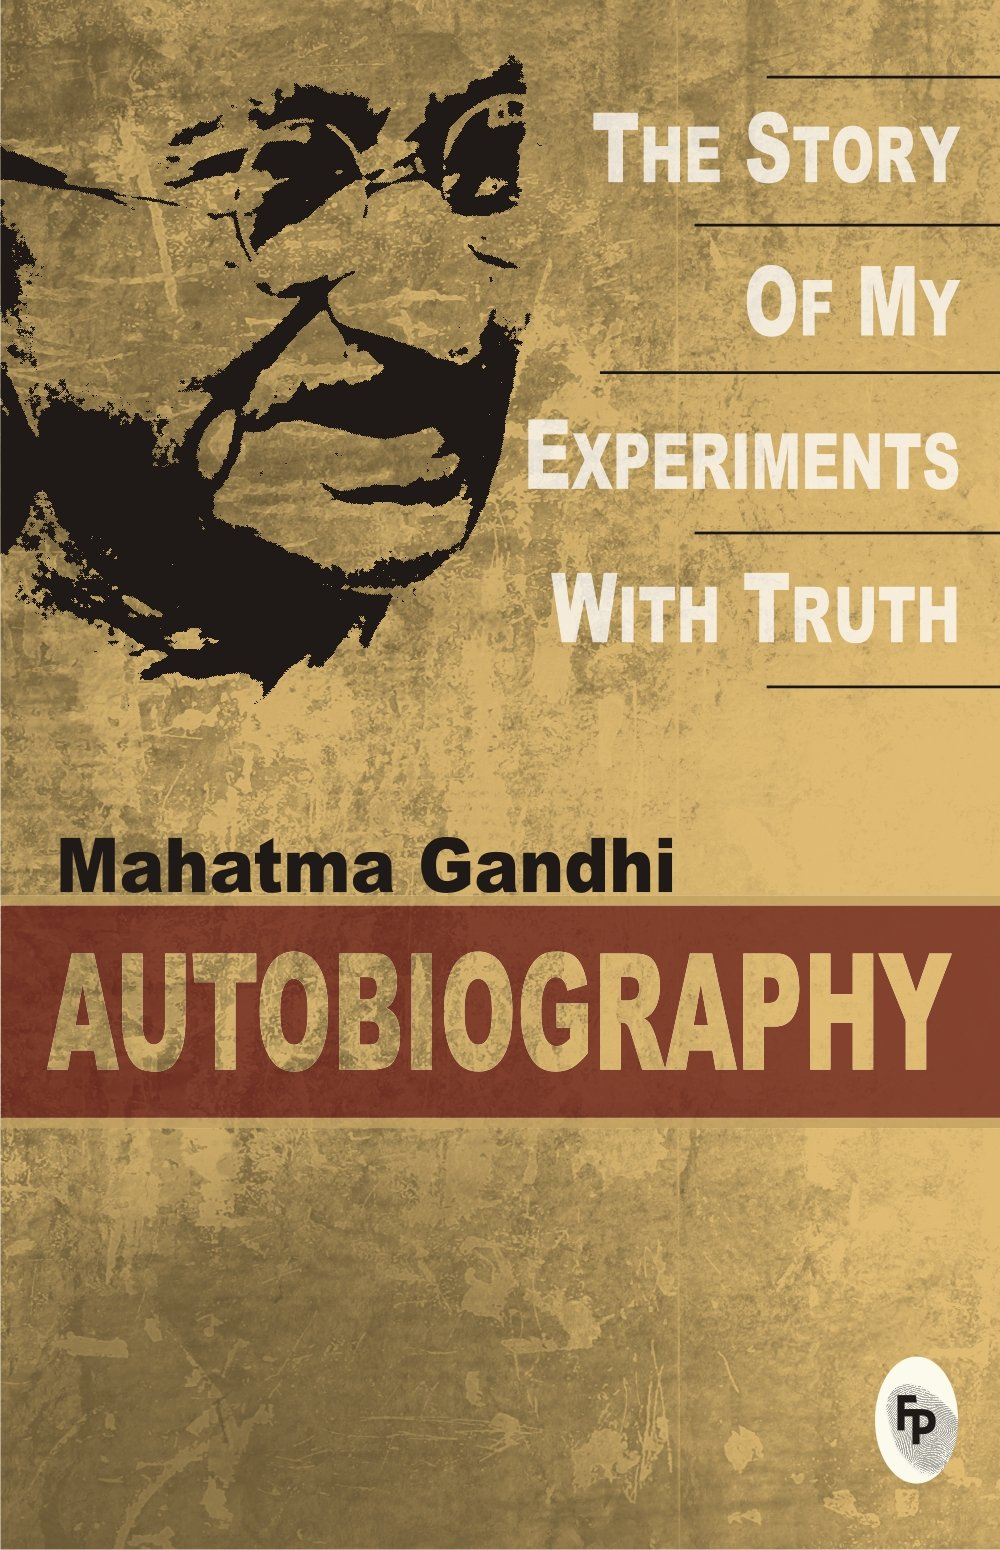 The Story of my Experiments with Truth